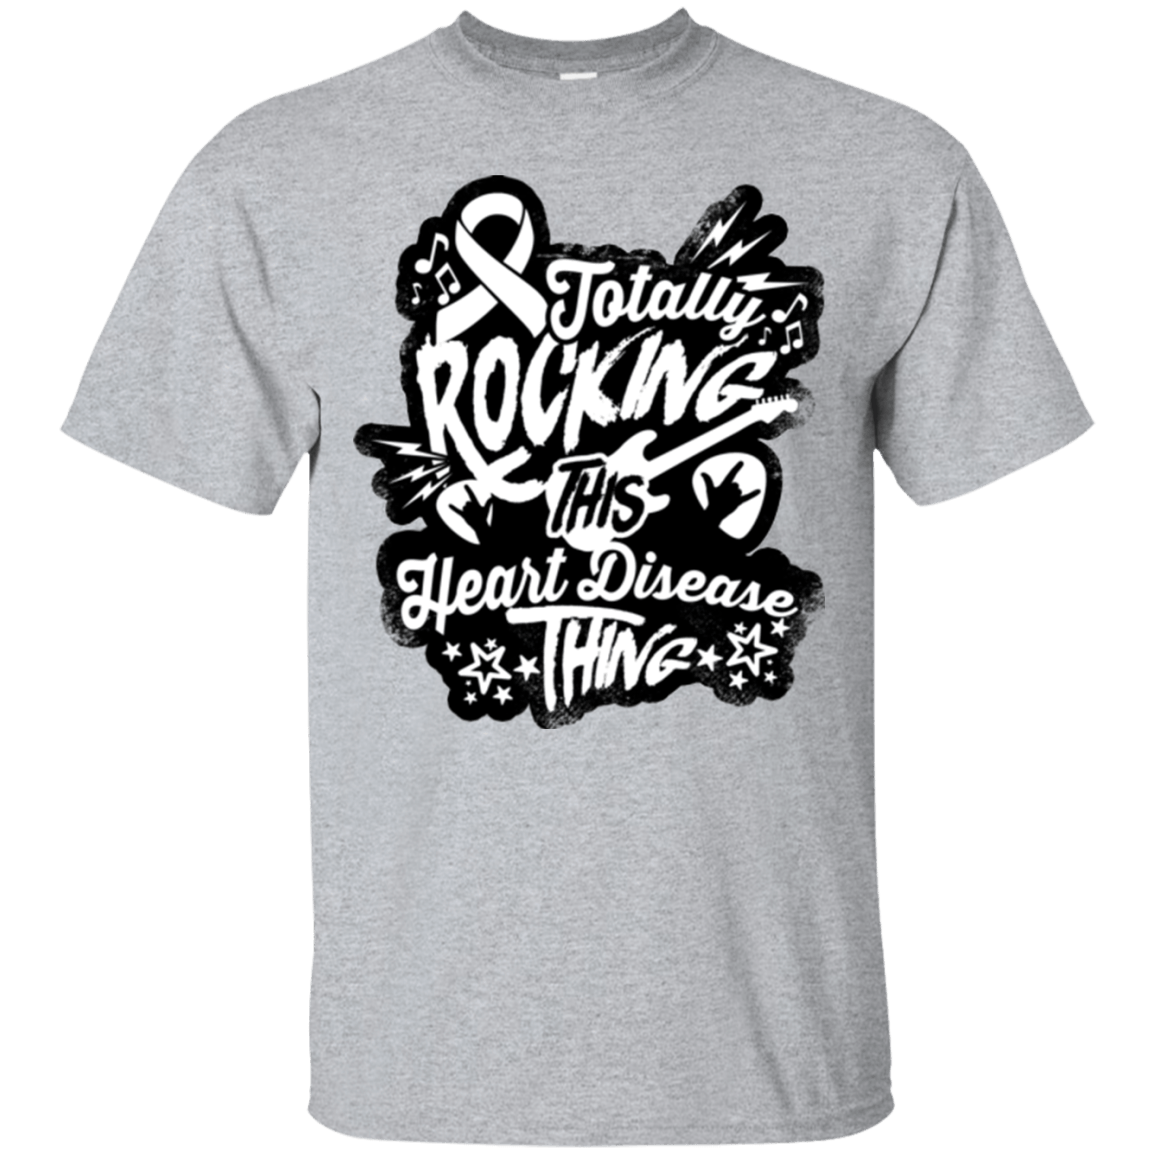 Rocking Heart Disease Unisex Shirt - The Unchargeables